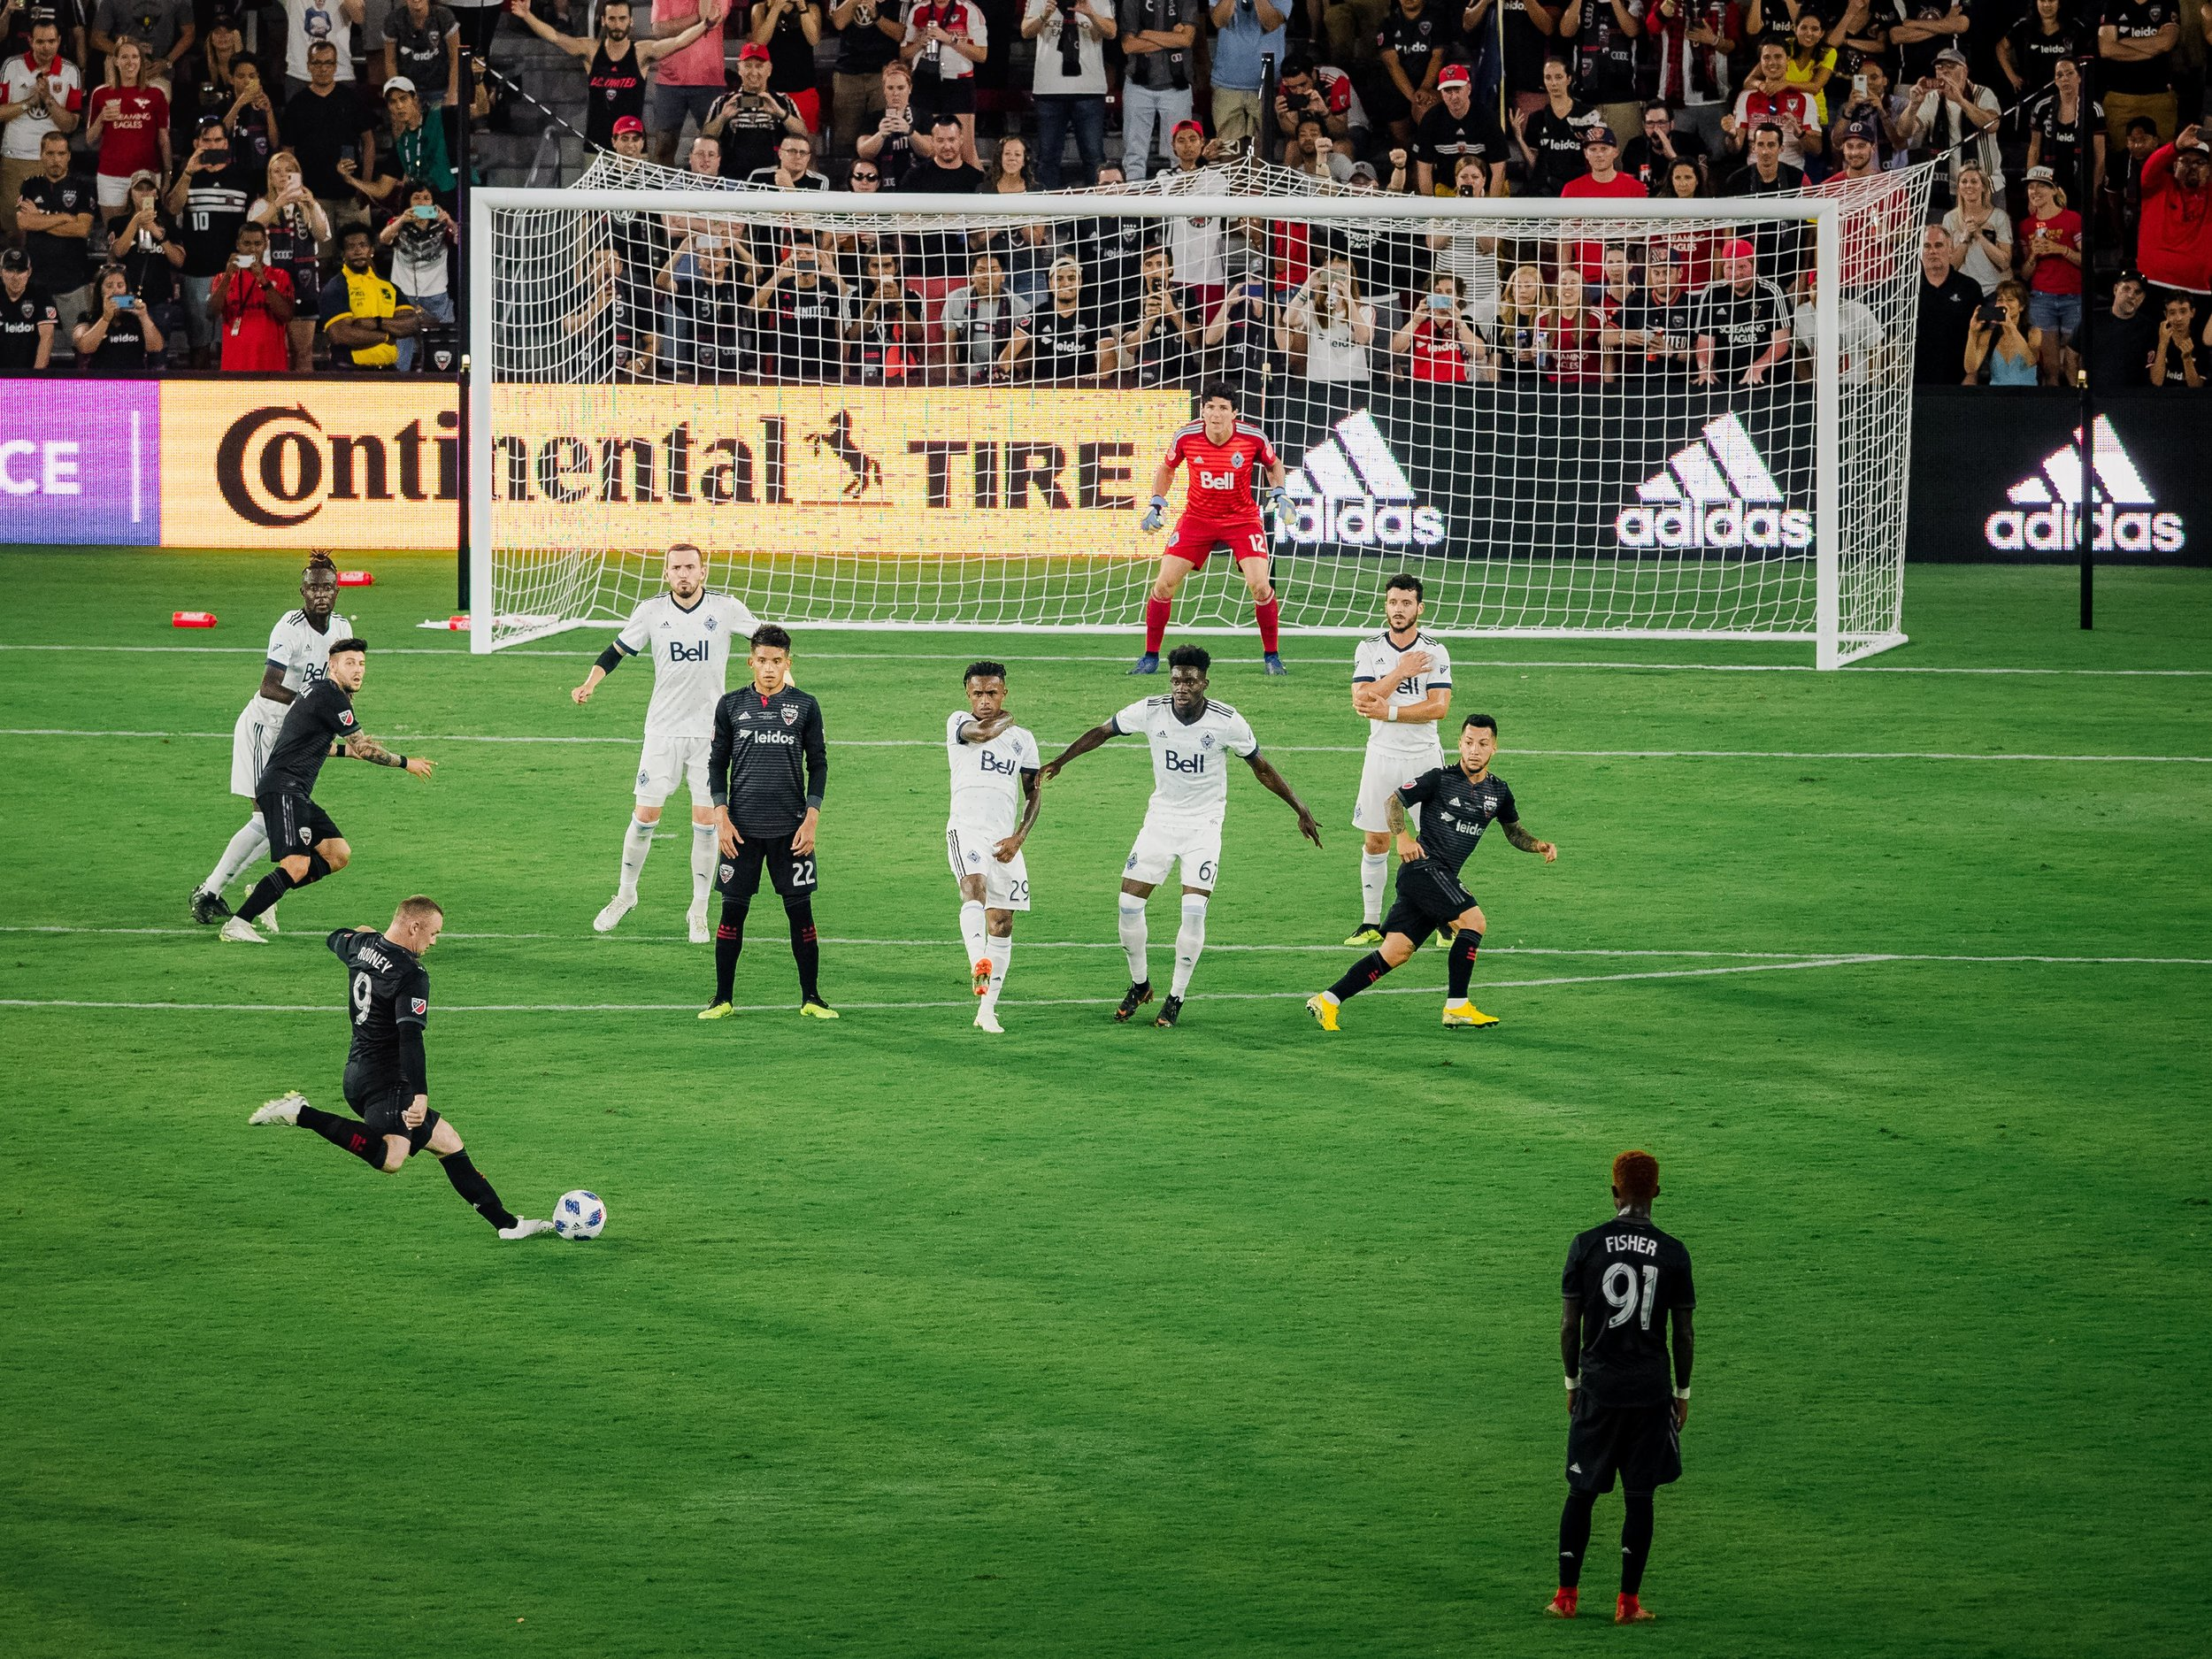 Mere minutes into his debut, Rooney was presented with a juicy free kick opportunity (he drilled it into the wall).